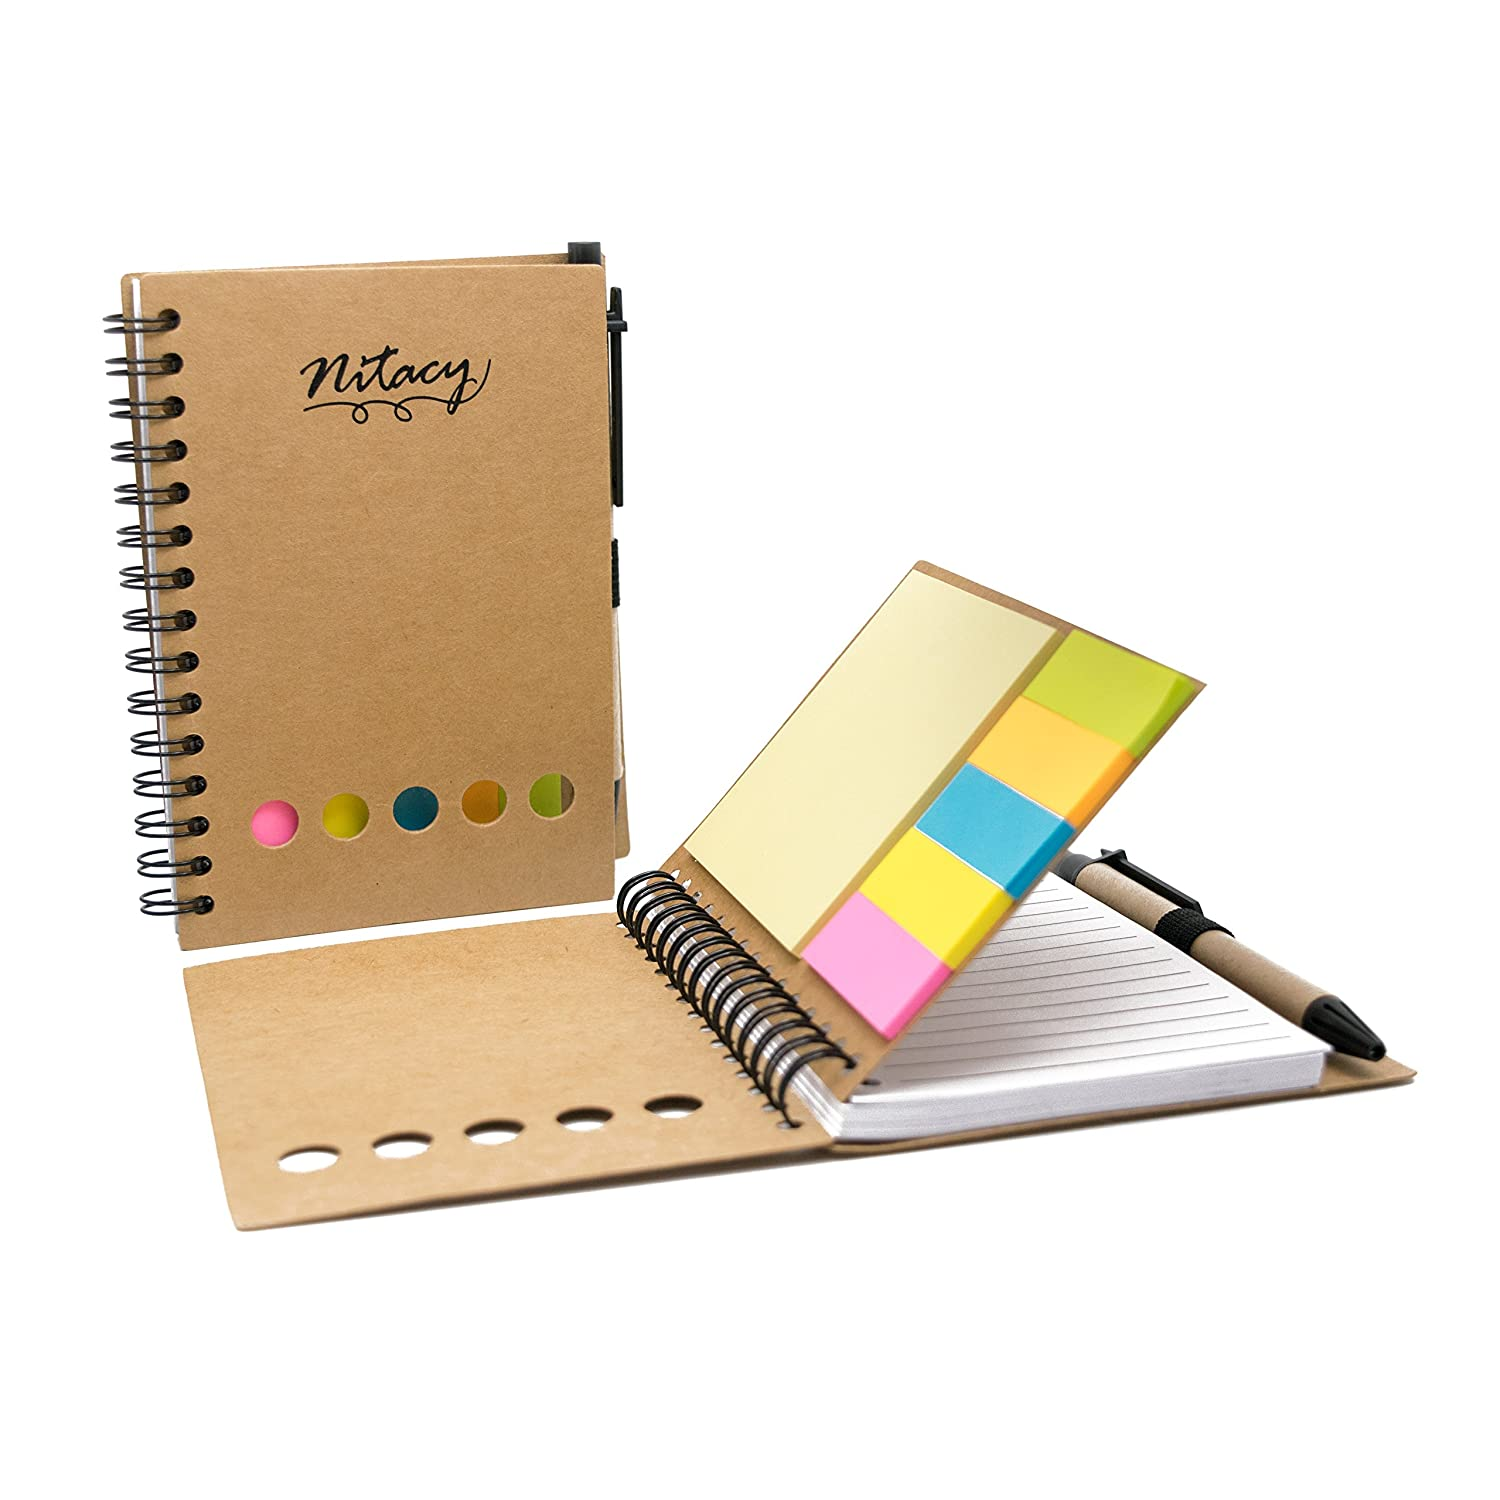 Nitacy Spiral Notebook With Pen In Holder Sticky Notes And Page